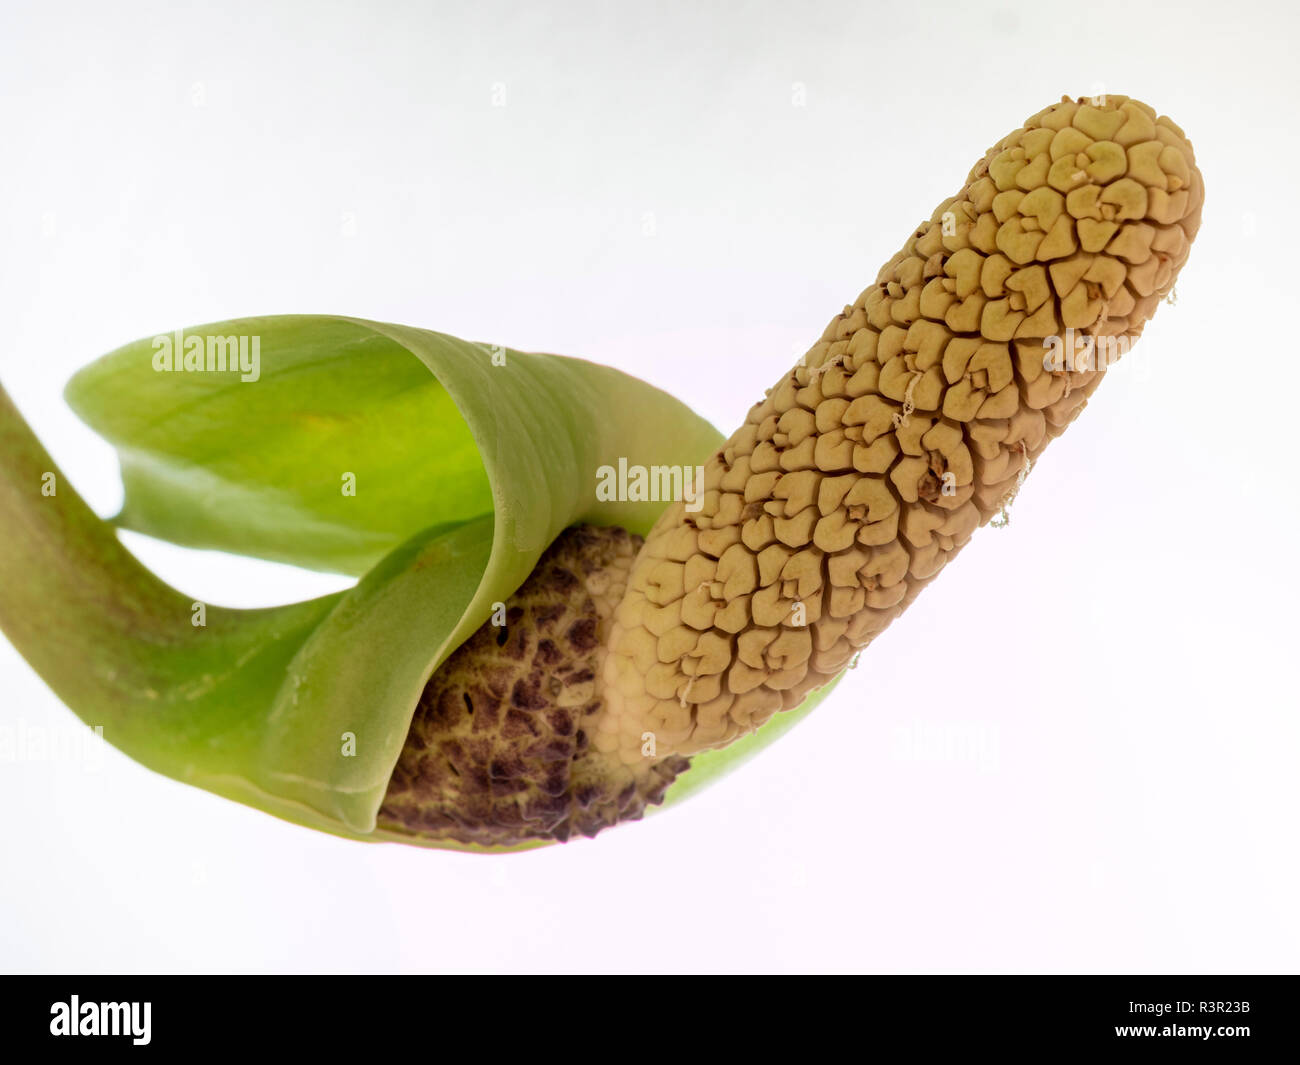 Flower of the houseplant Aroid Palm or Arum Fern (Zamioculcas zamiifolia) - Stock Image